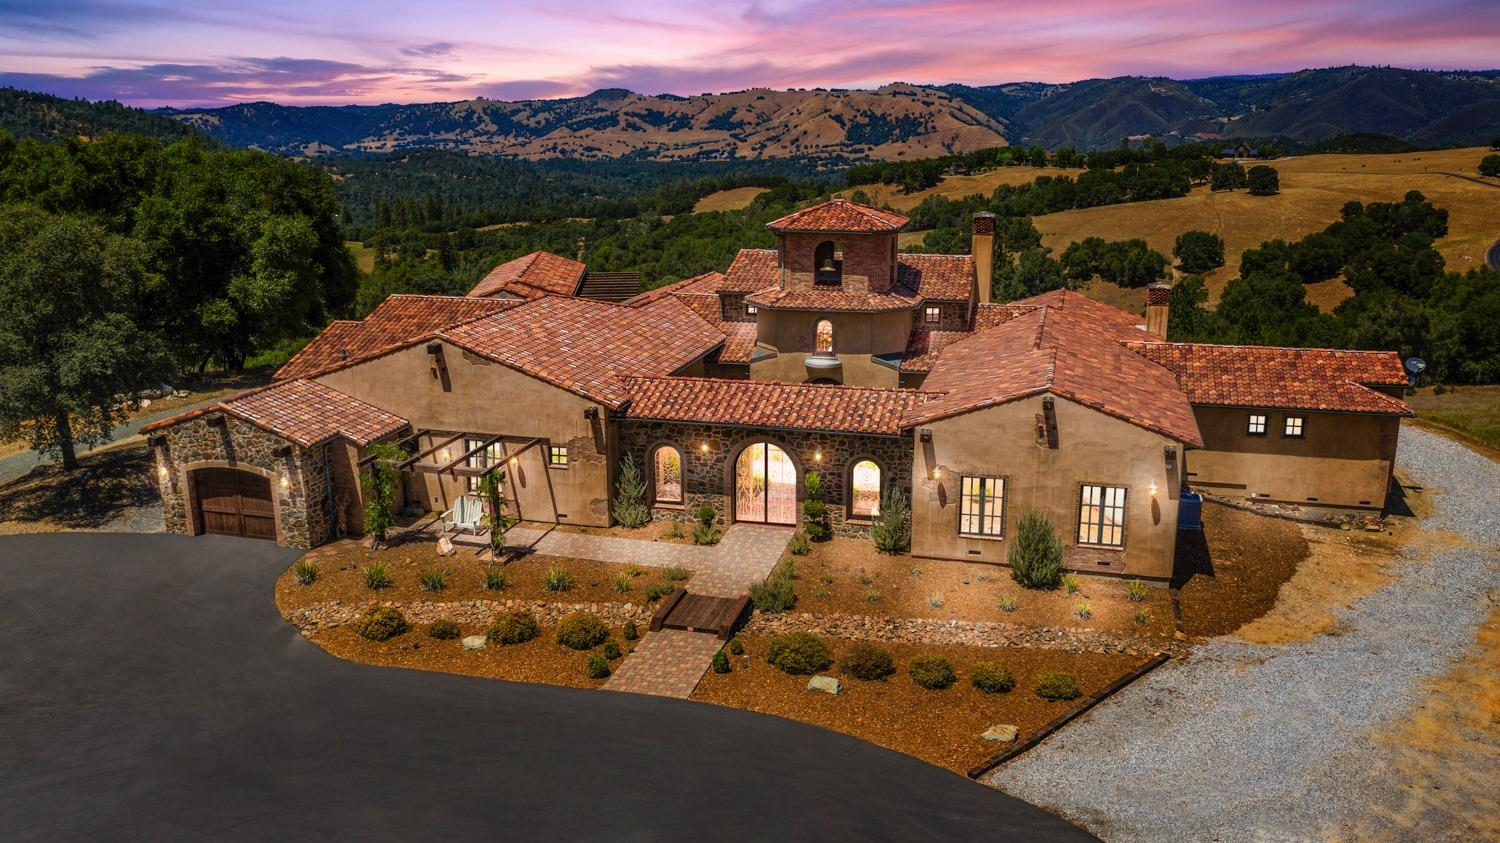 Welcome Home to this spectacular and private custom-built(2011) Mediterranean-infused, SINGLE STORY 6043sf home on almost 23 acres with absolutely stunning views! This home was meticulously crafted from natural elements and reclaimed history from around the Sacto region. Too much detail to list all: 4 bedrooms all ensuite, built-in wet bar, rec room, theater room, wine room. Custom wood and iron workings throughout with many Italian plaster accent walls. Radiant floor heat. Back-up generator for main house. Built-in pool & spa, firepit and large poolhouse which includes kitchenette, vented BBQ area, full bath. 1-car garage attached to main house with electric car plug-in, 4-car detached garage, HUGE 2800sf shop w/RV storage for your car collector client. 5 acres have been rough-ripped around the main house for a vineyard. This property is gated and fully fenced with a small cross-fenced area. Truly an one-of-a-kind entertainer's dream home with so many possibilities. No HOA's or CC&R's